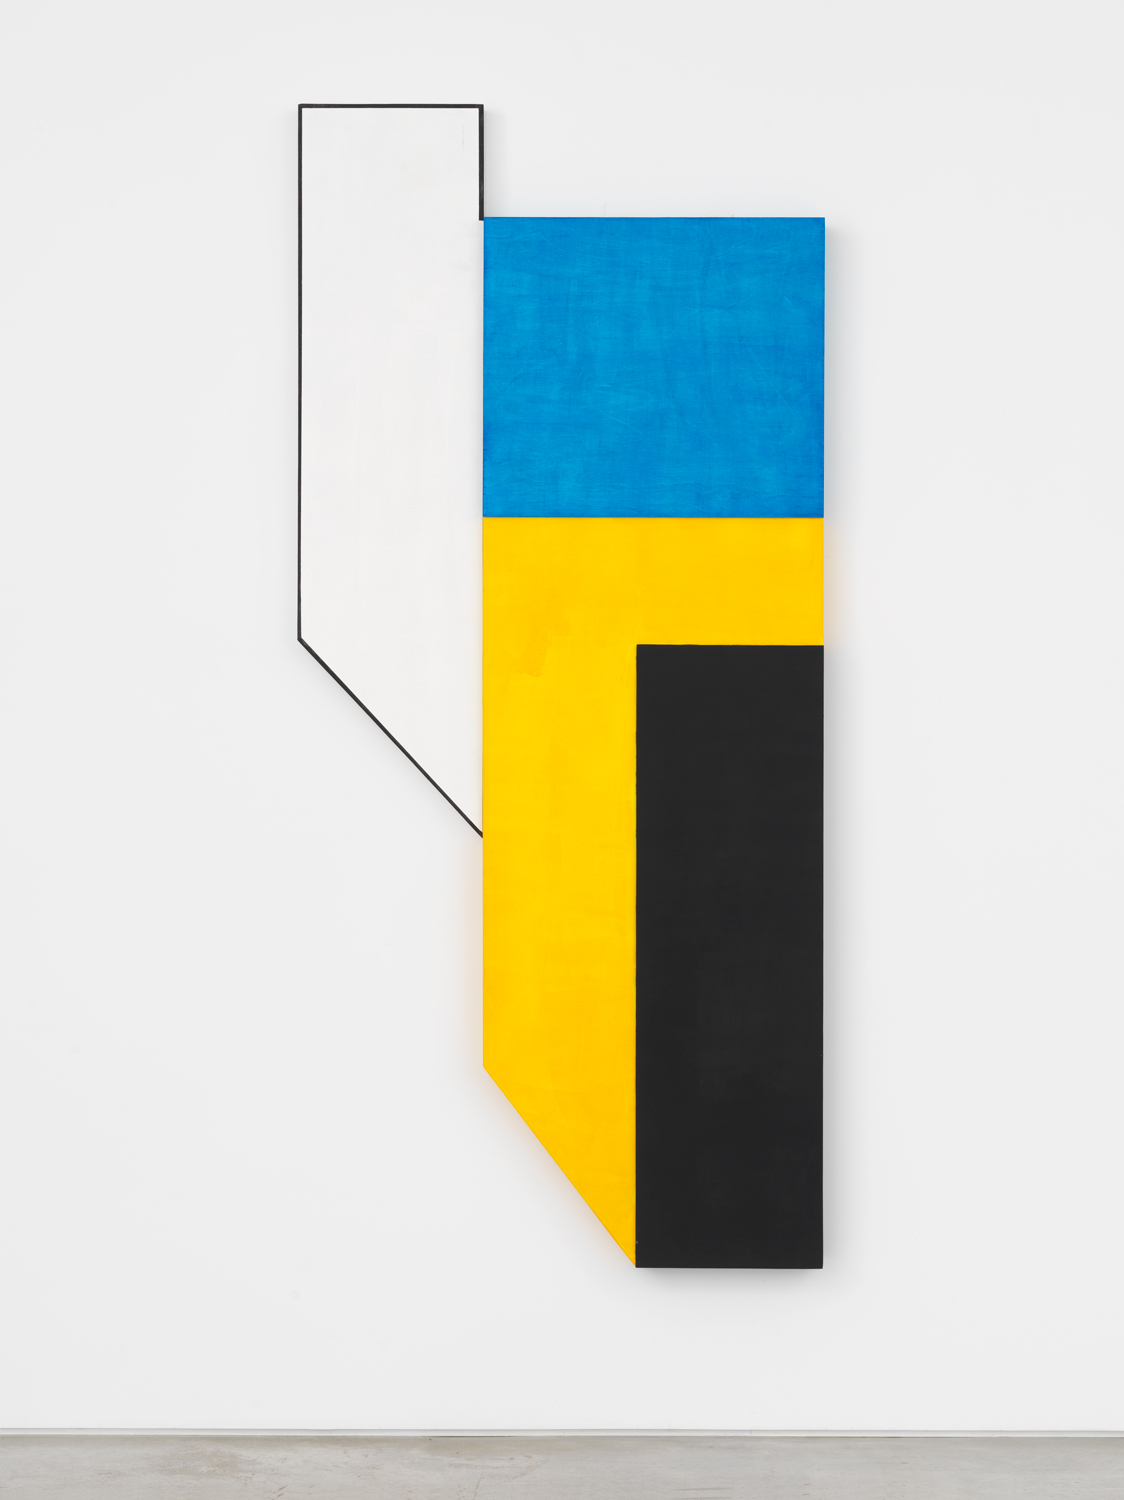 Don Dudley, #15, 2017, acrylic on birch plywood, 74h x 33.5w x 3d in.